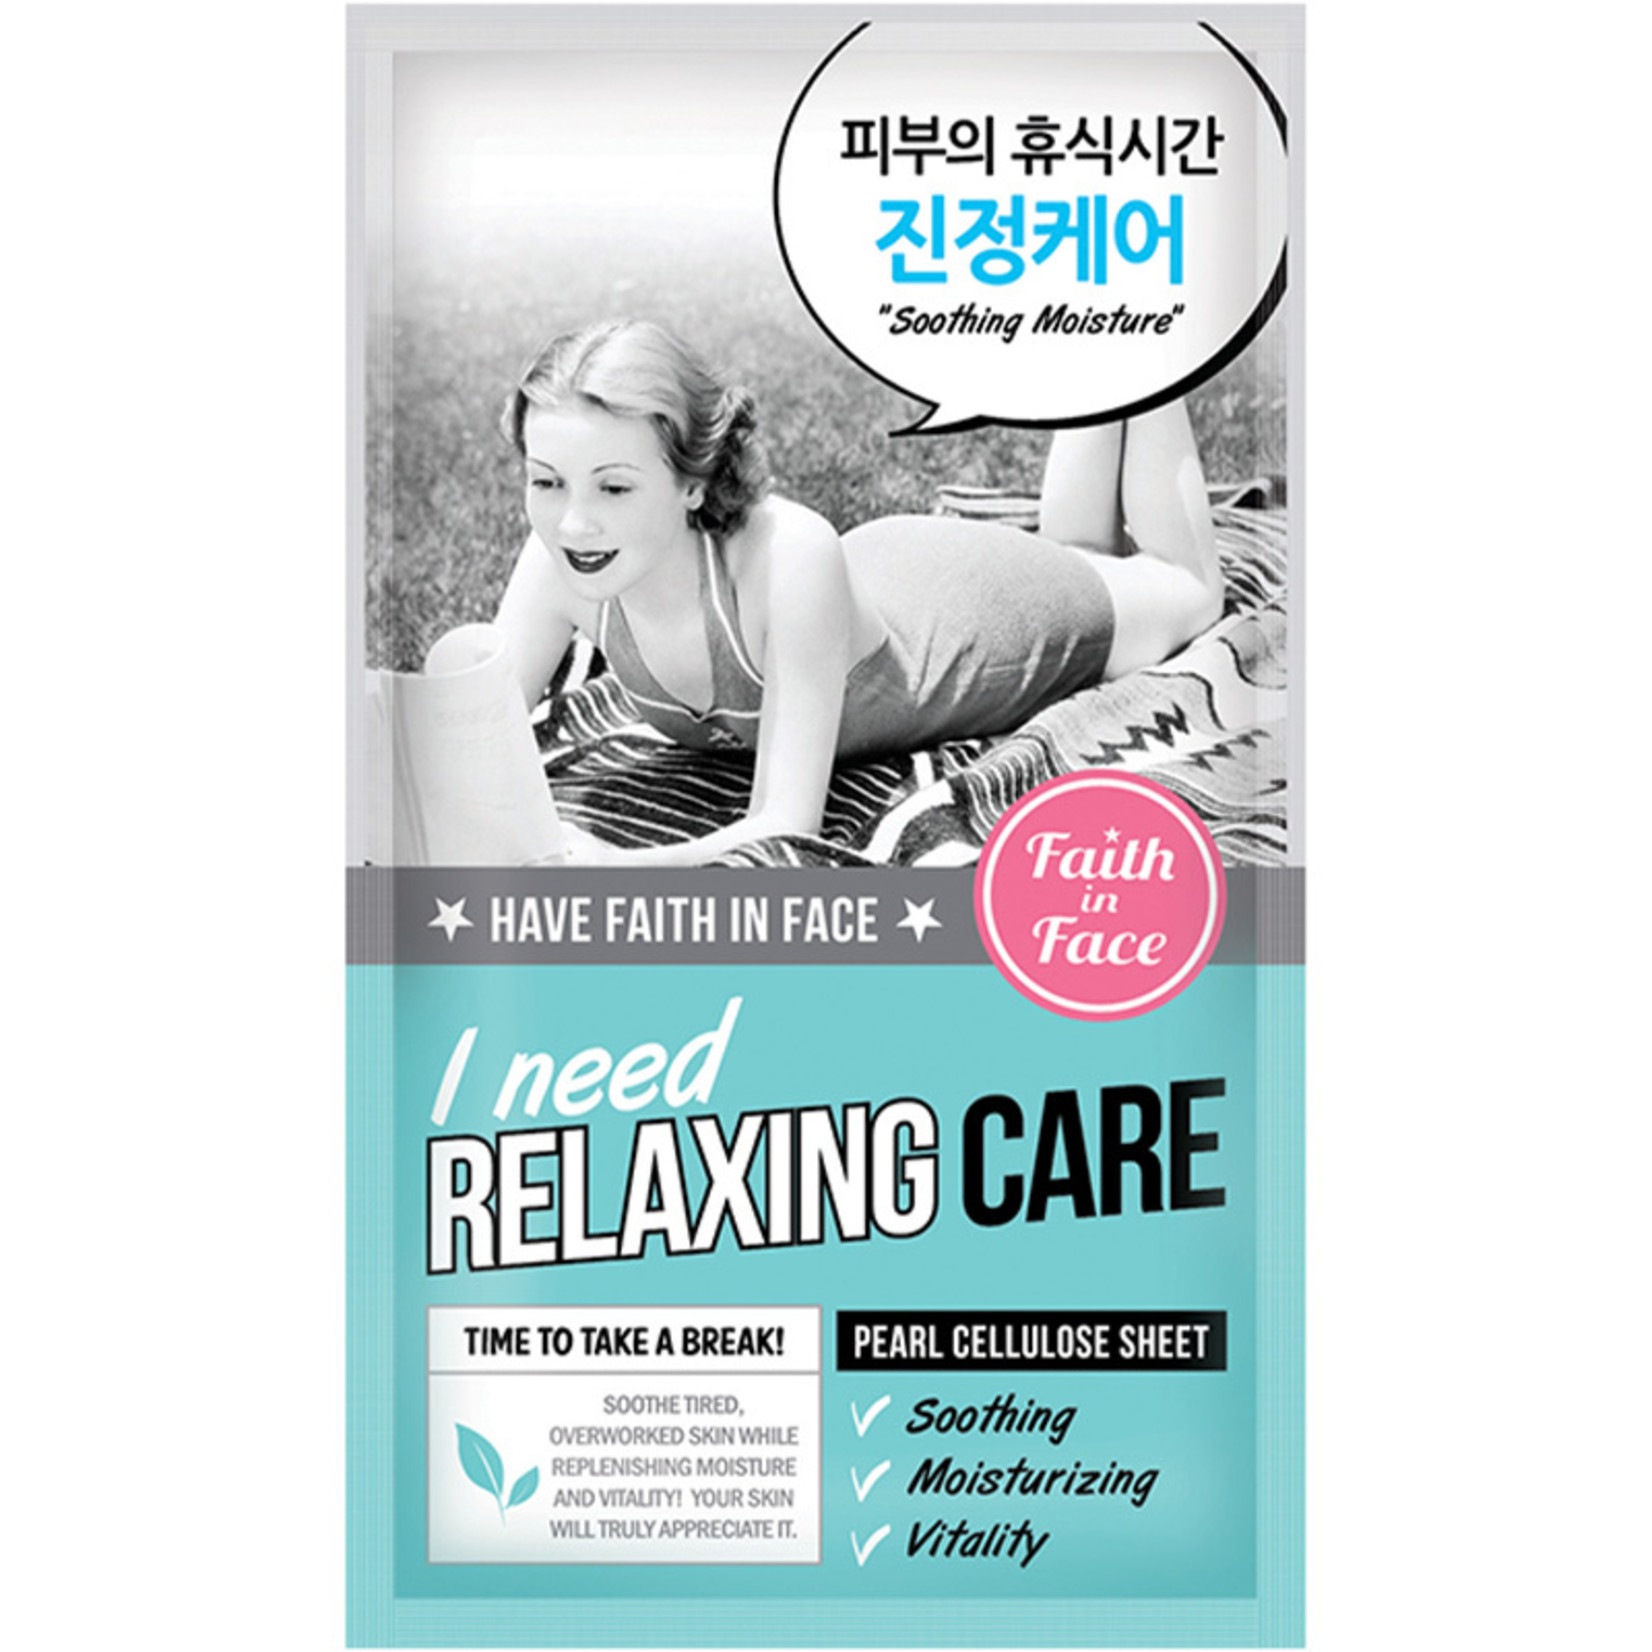 Faith in Face I Need Relaxing Care Mask